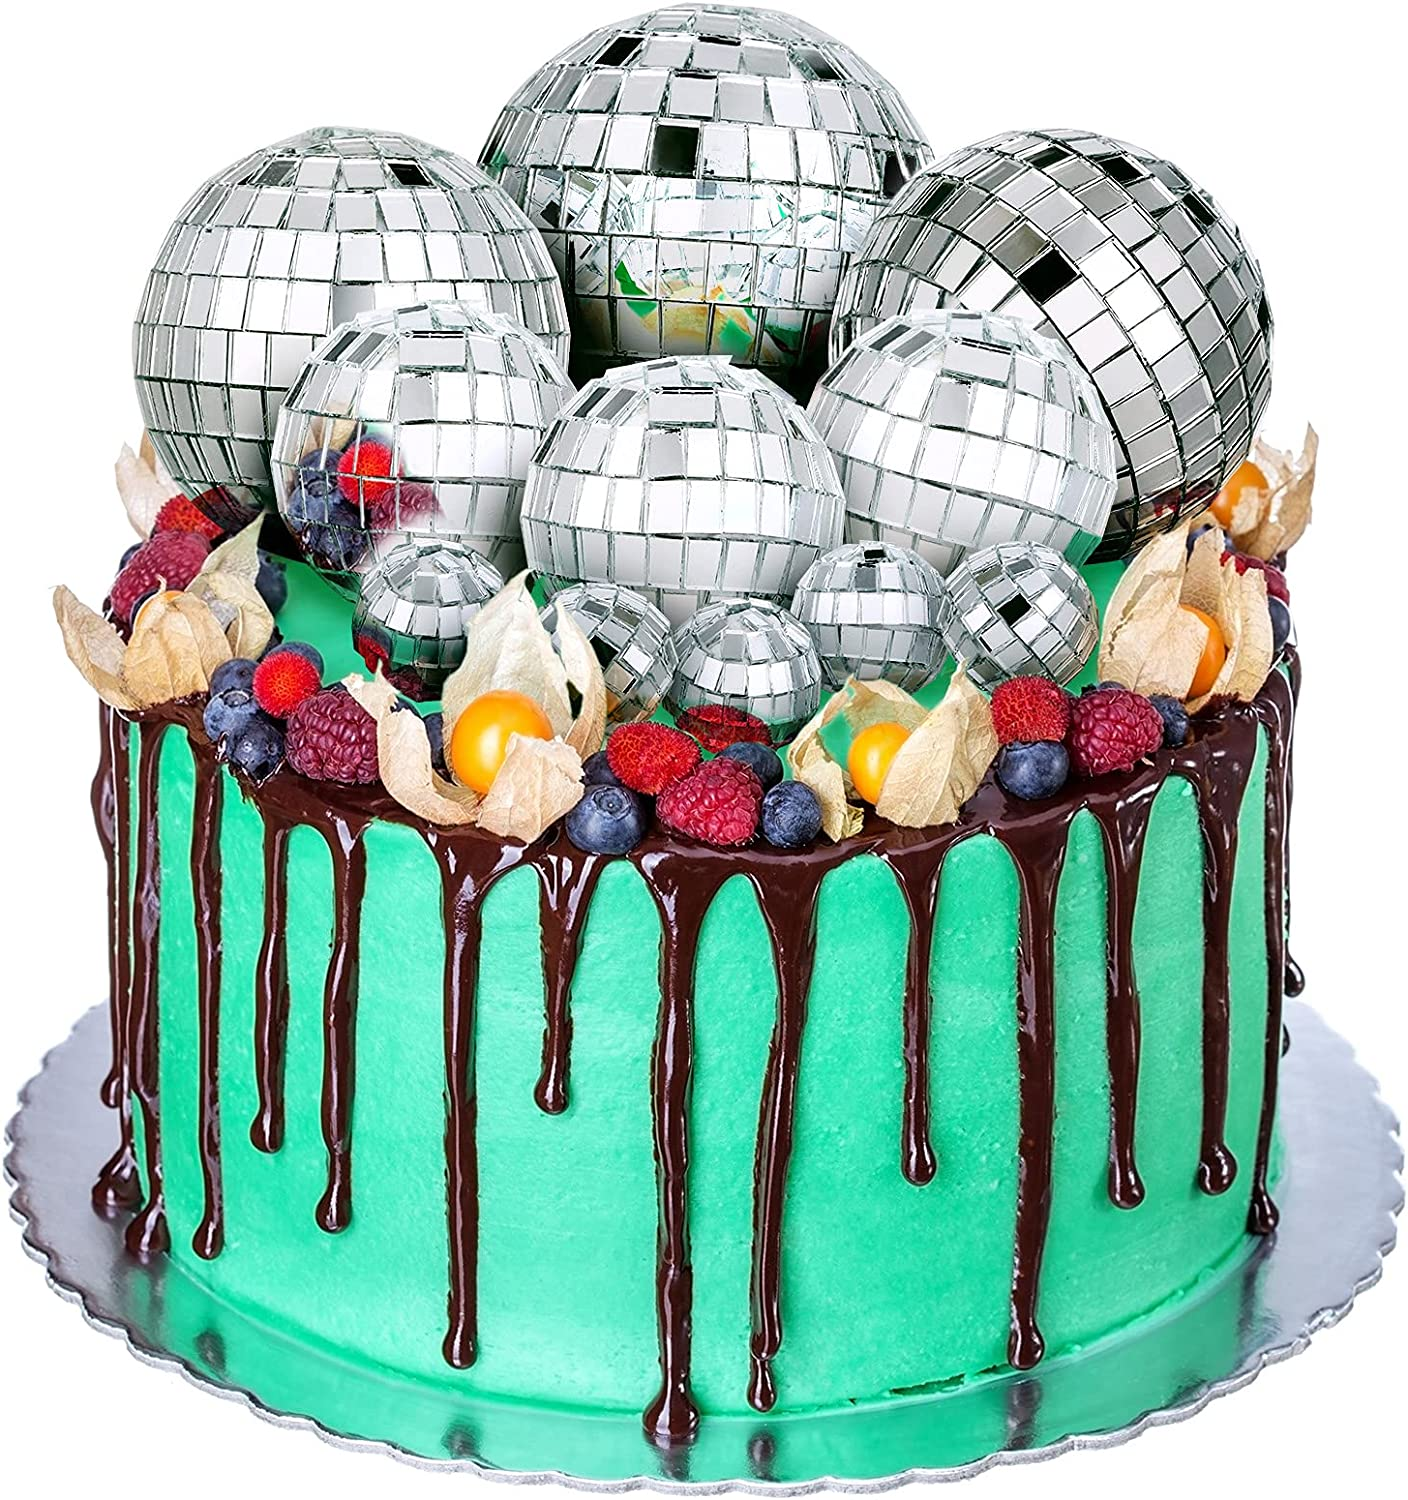 11 Pieces Disco Ball Cake Decoration Disco Ball Table Decorations Disco Ball Centerpiece Decor 70s Disco Themed Cake Toppers for Birthday Christmas Disco Theme 70s Party Dance Party Supplies